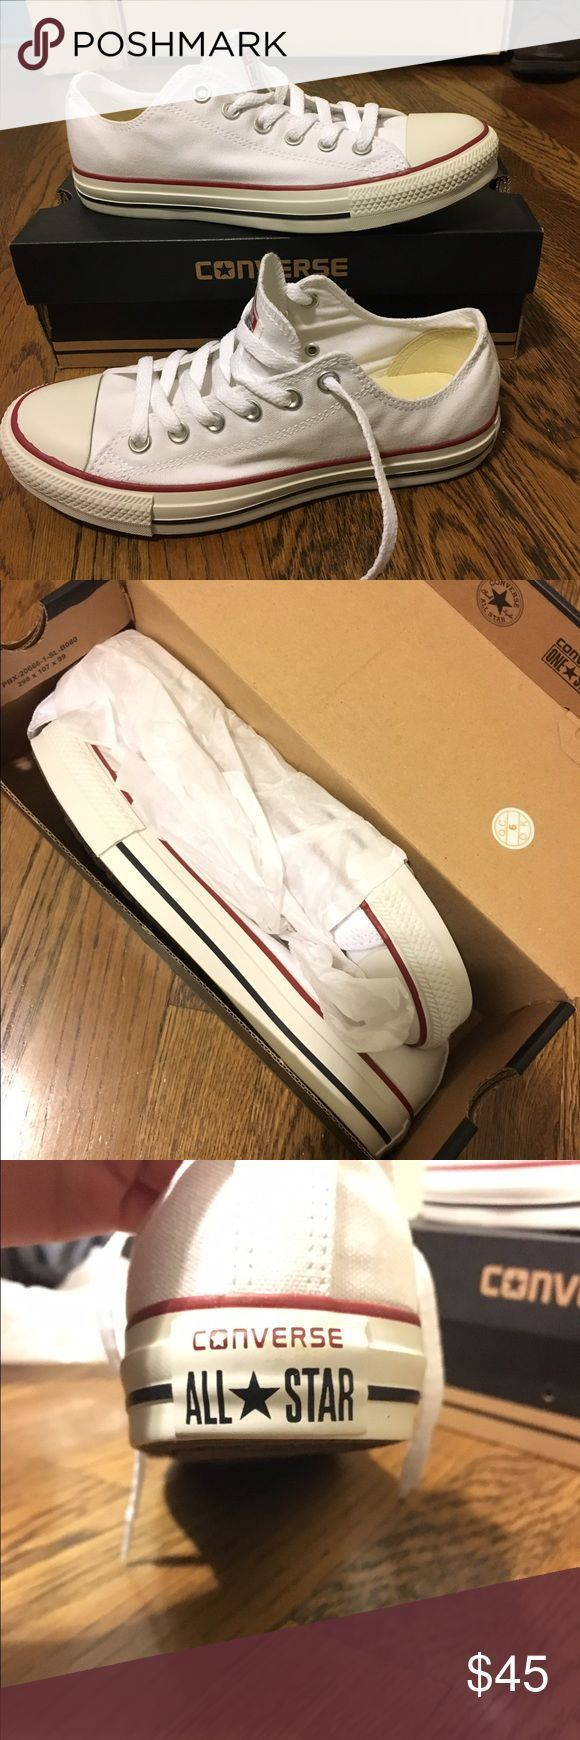 Tendance Basket 2017  White Low Rise Converse- New in Box! Never worn- still in original box wrapped i